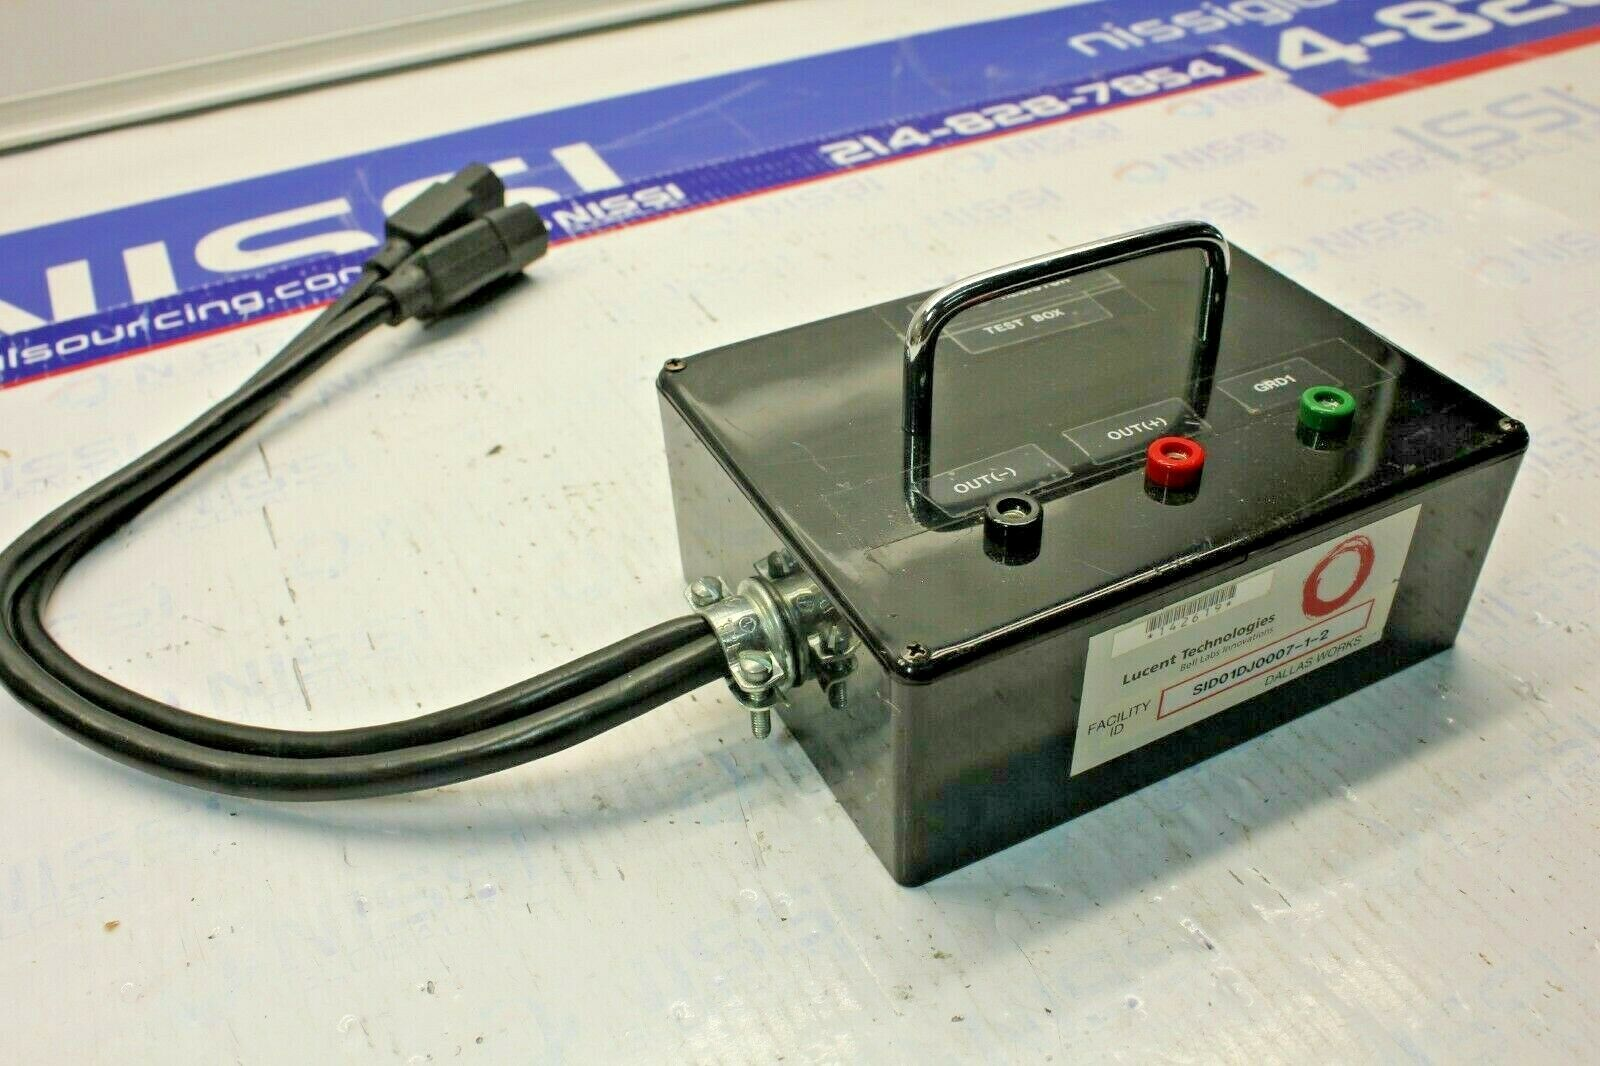 LUCENT TECHNOLOGIES SID01DJ0007-1-2 HIPOT REISITOR TEST BOX